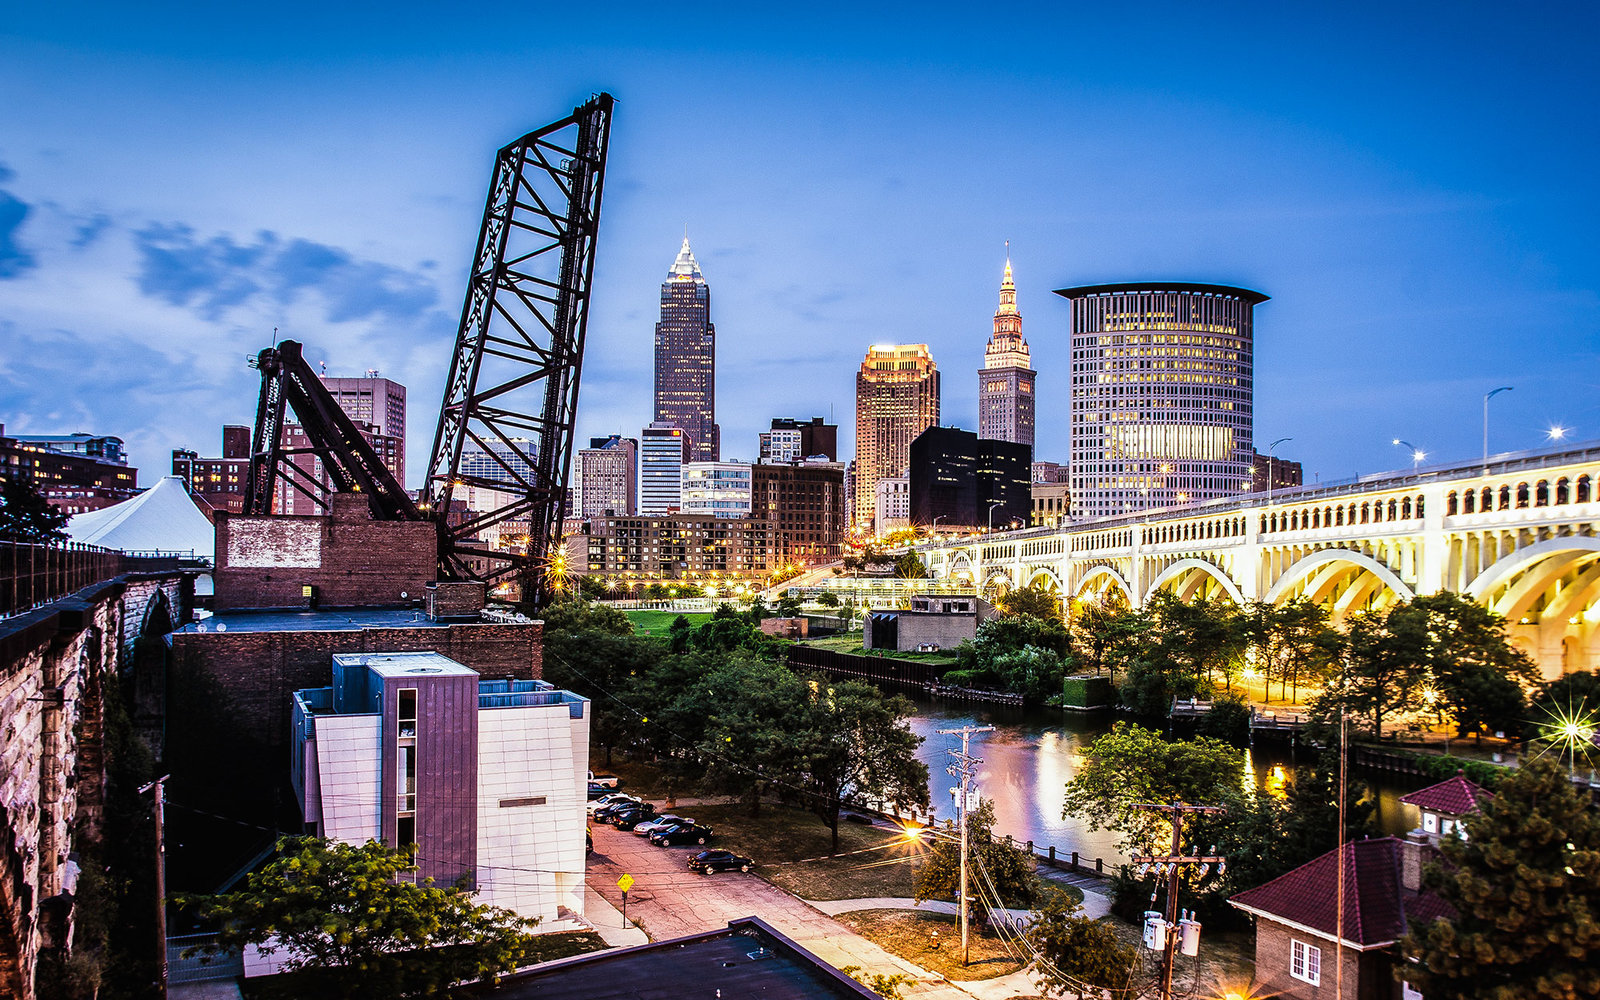 Cuyahoga River bank, Cleveland Downtown